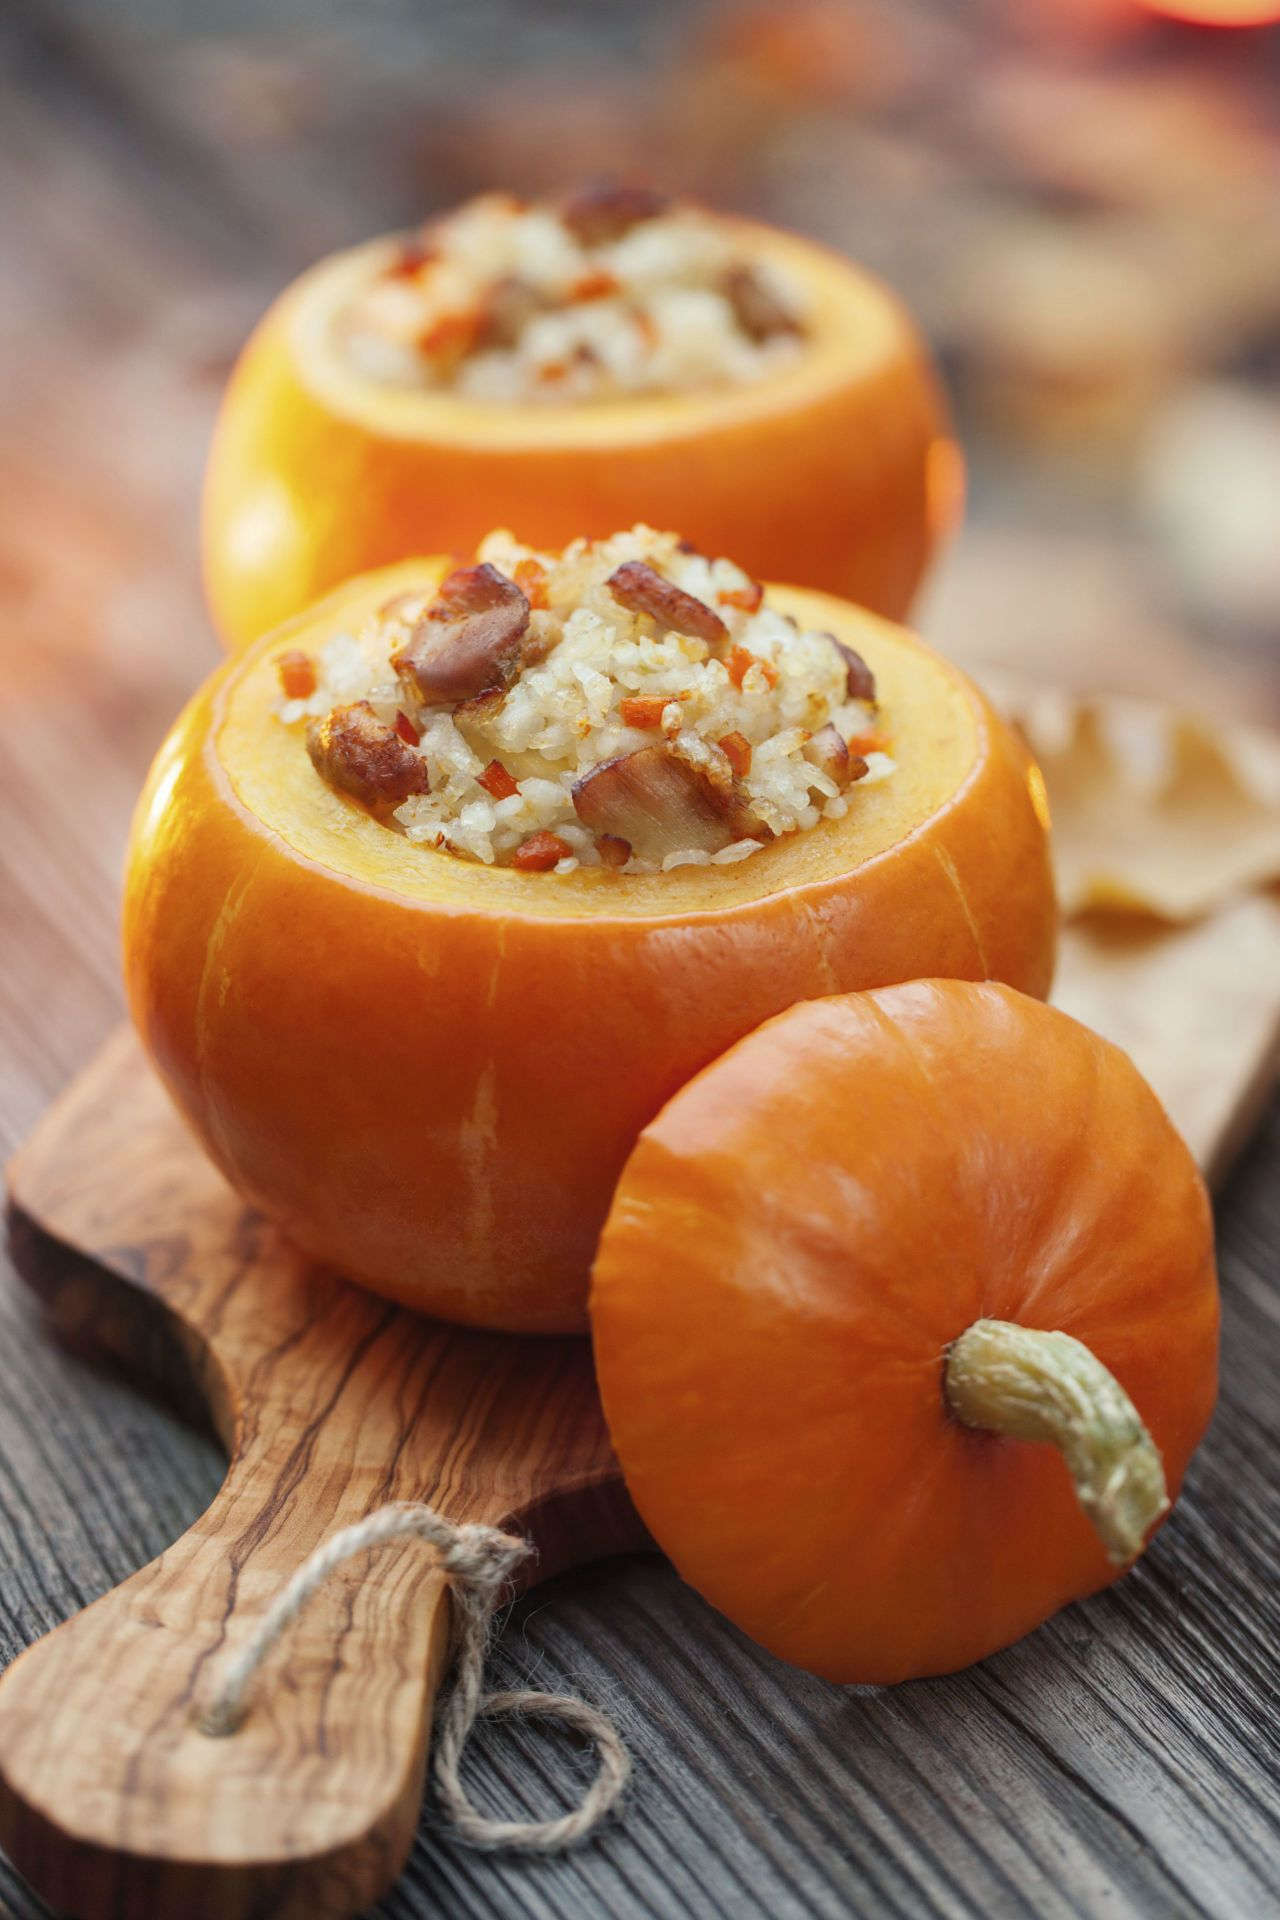 """<p>Stuff your pumpkins—and your guests—with this clever recipe that's as adorable as it  is delicious.</p><p><a href=""""http://www.countryliving.com/food-drinks/recipes/a987/baked-stuffed-pumpkin-3090/"""" target=""""_blank"""">Get the recipe</a>. </p>"""